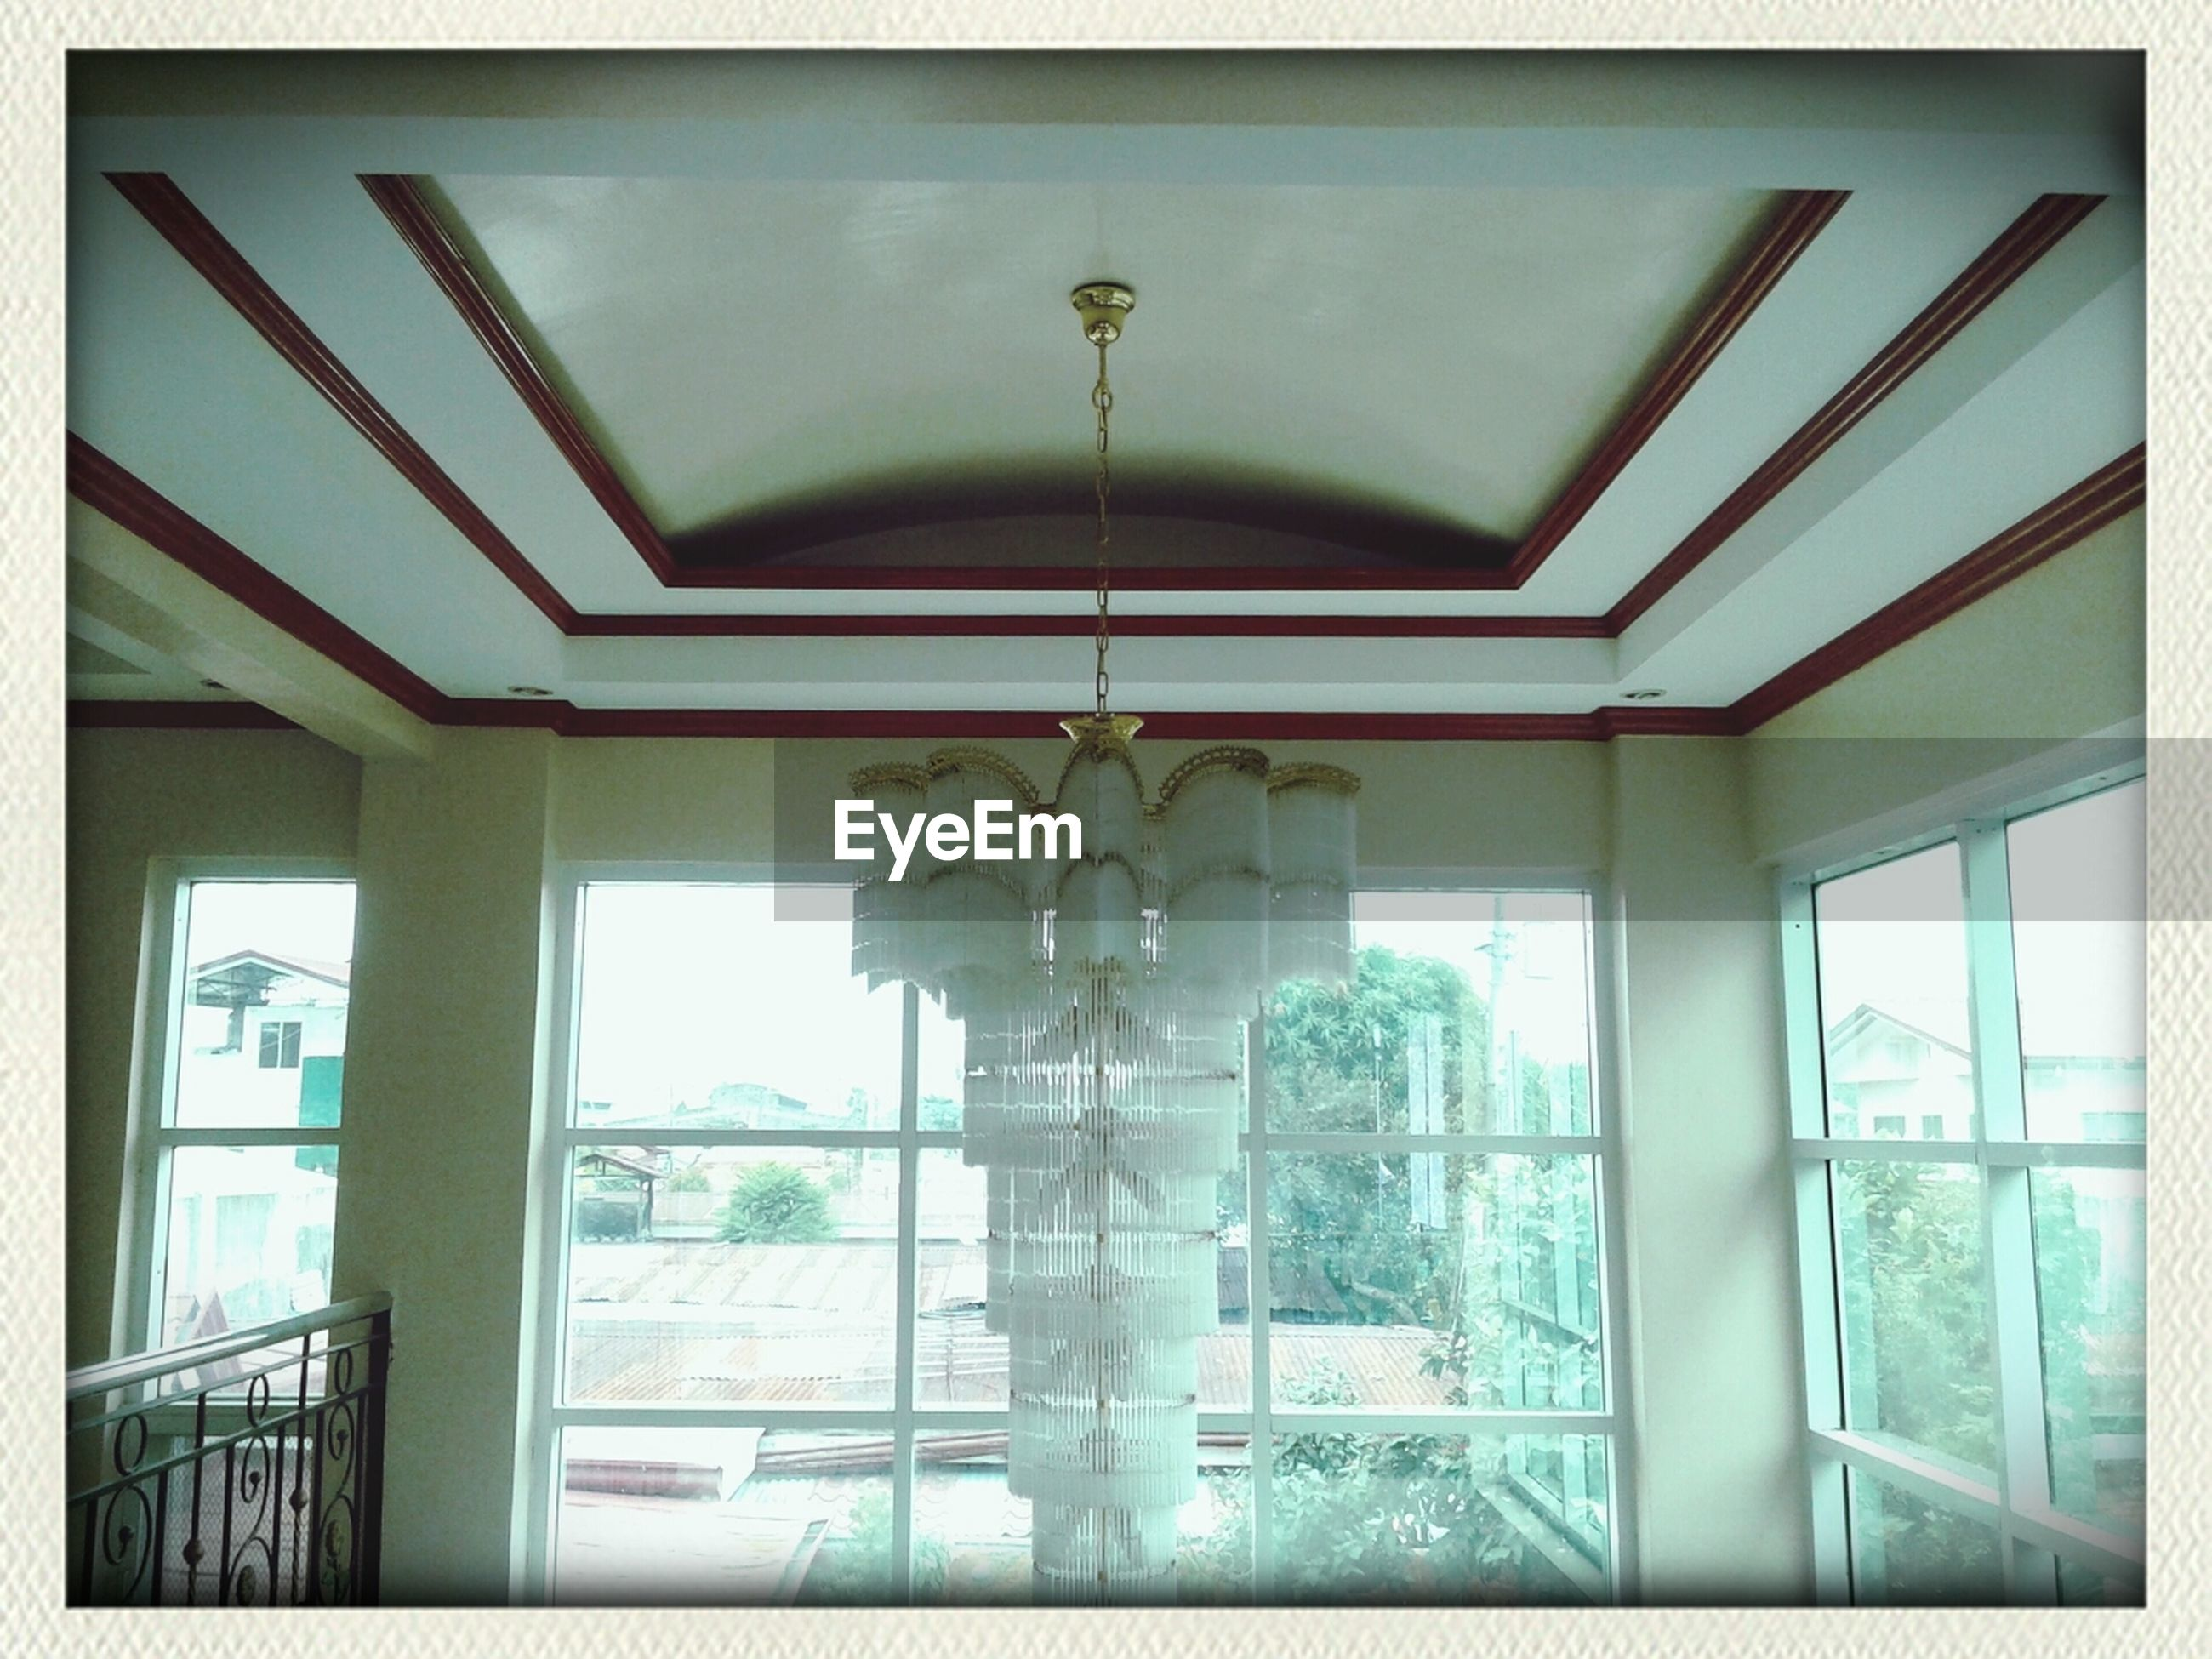 indoors, ceiling, architecture, built structure, window, transfer print, glass - material, low angle view, interior, auto post production filter, architectural feature, door, pattern, day, arch, building, transparent, no people, hanging, corridor